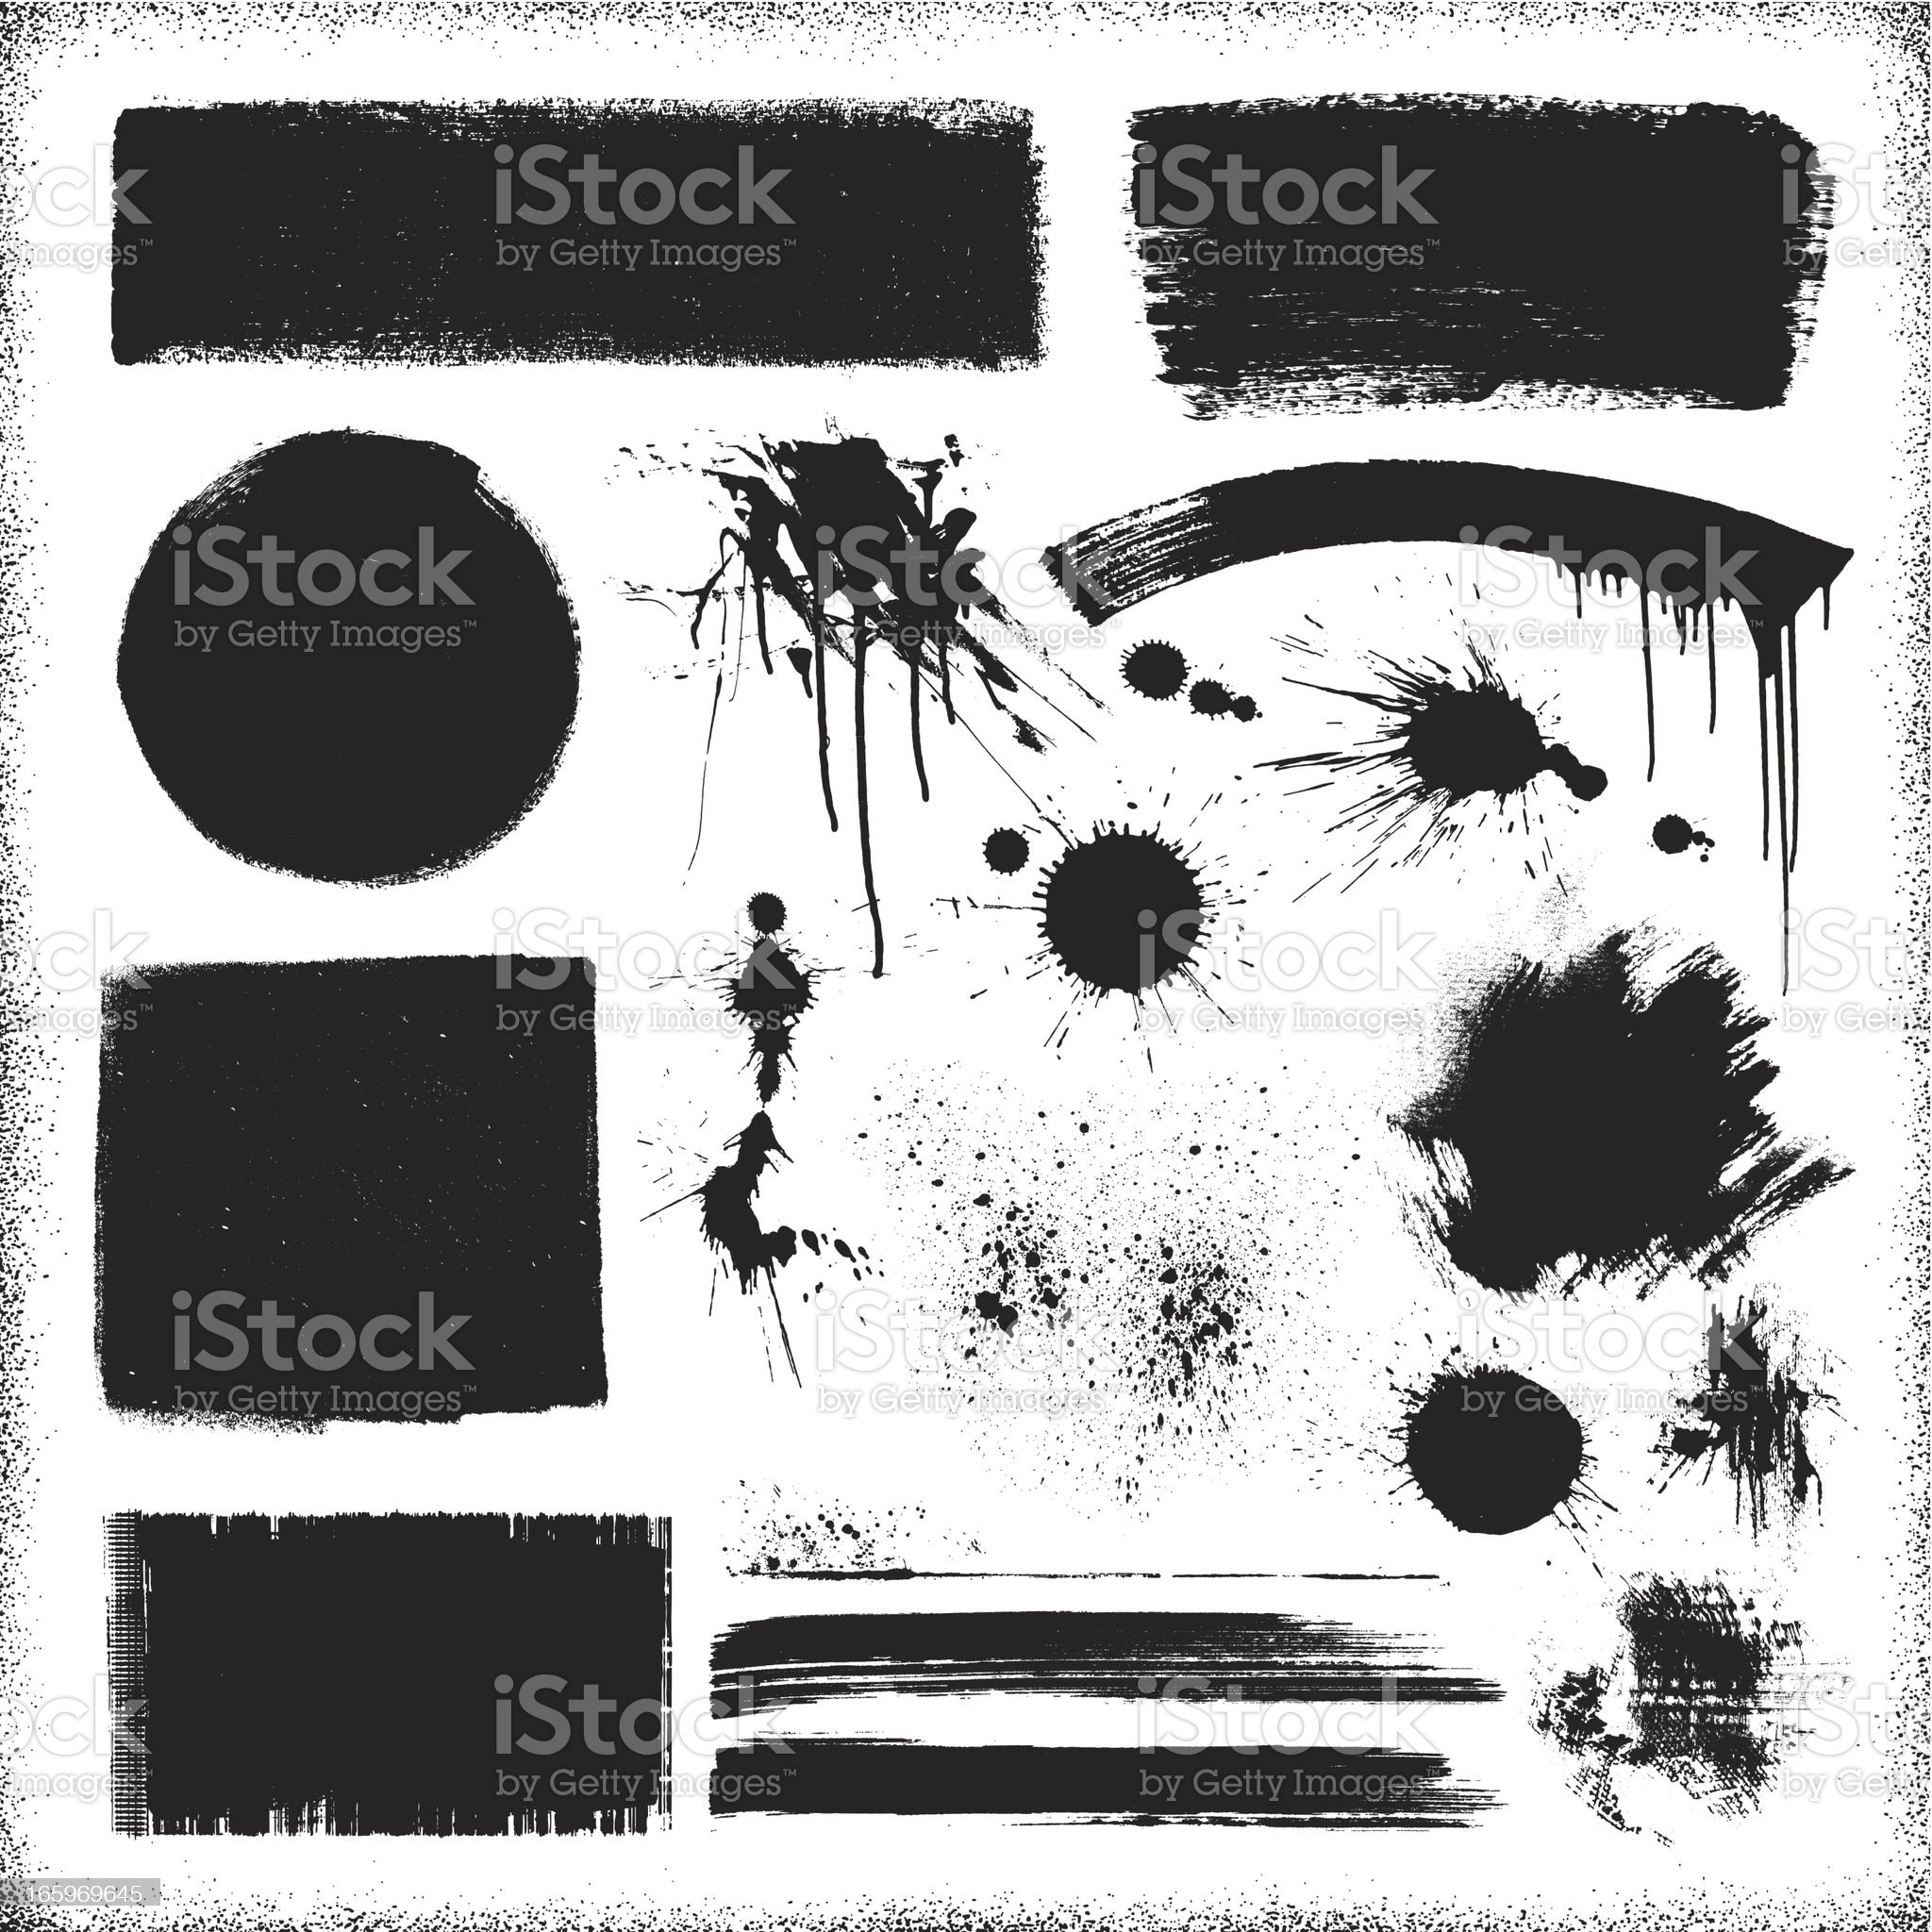 Grunge Paint Textures royalty-free stock vector art